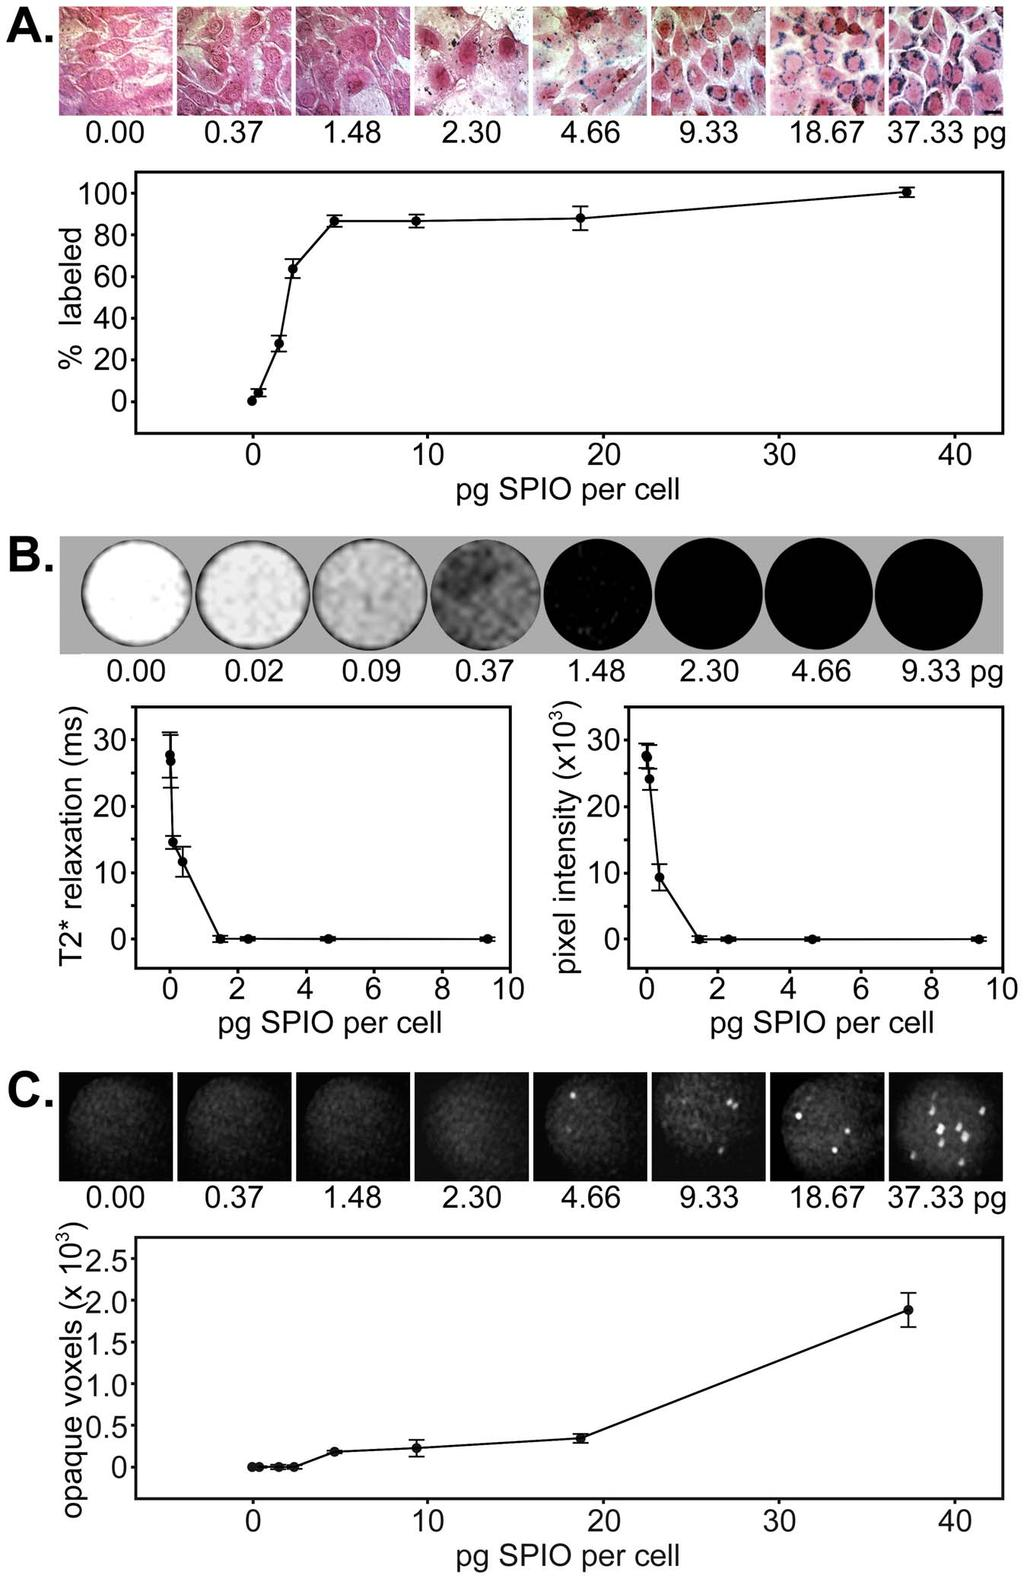 Figure 1. In vitro detection of SPIO nanoparticle-labeled muscle progenitor cells by histology, MRI, and mct.